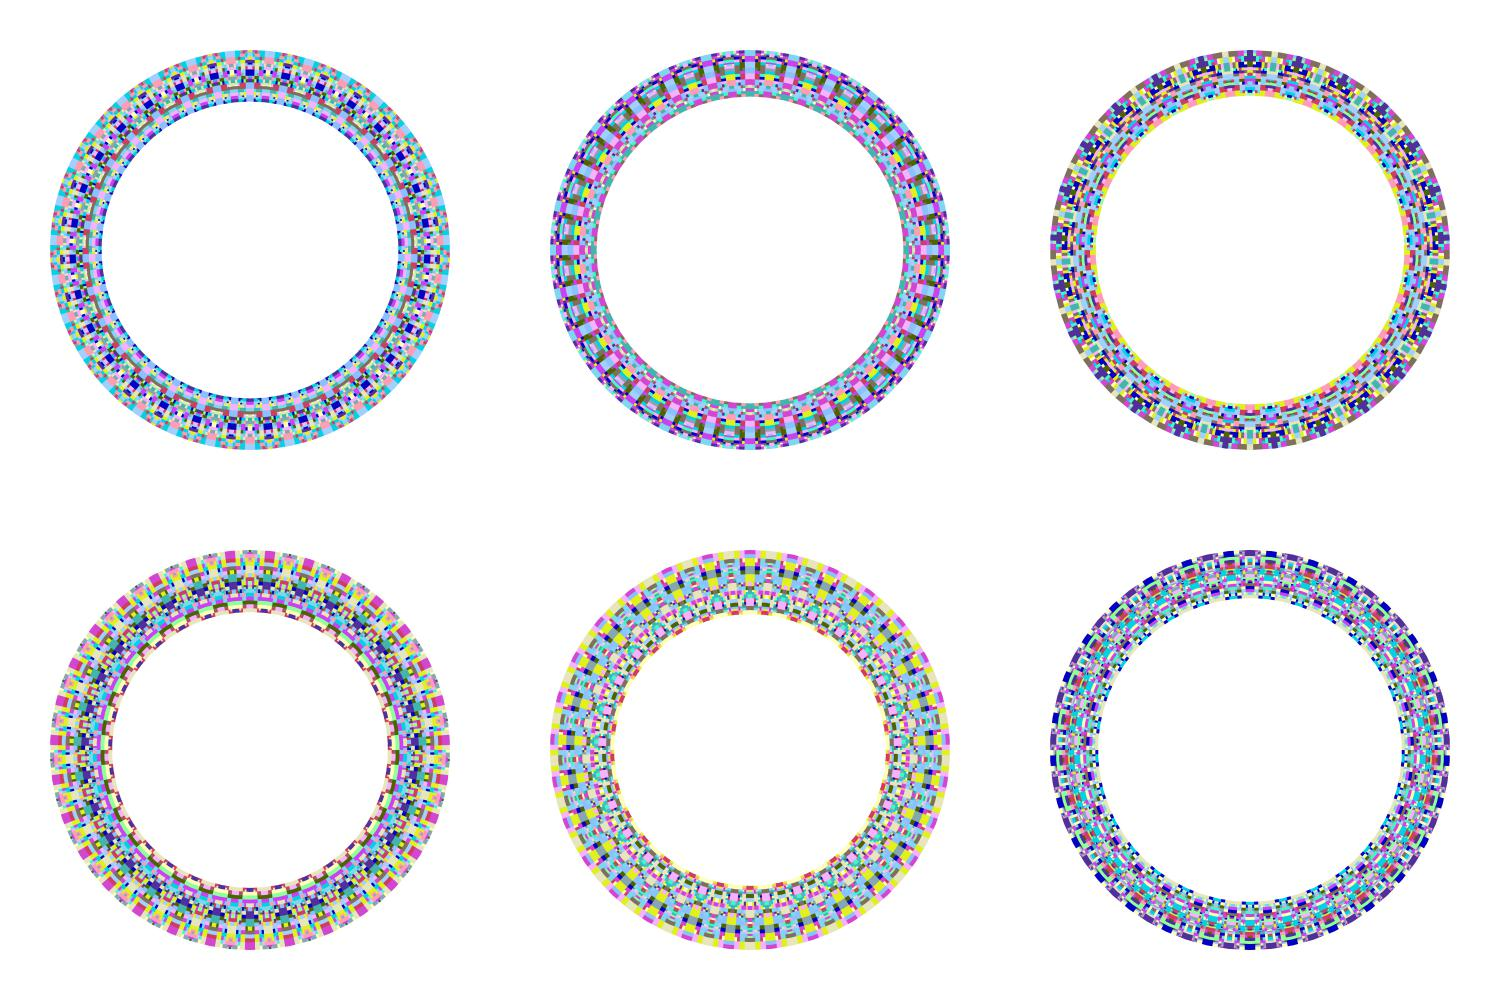 Download Free 6 Mosaic Wreaths Graphic By Davidzydd Creative Fabrica for Cricut Explore, Silhouette and other cutting machines.